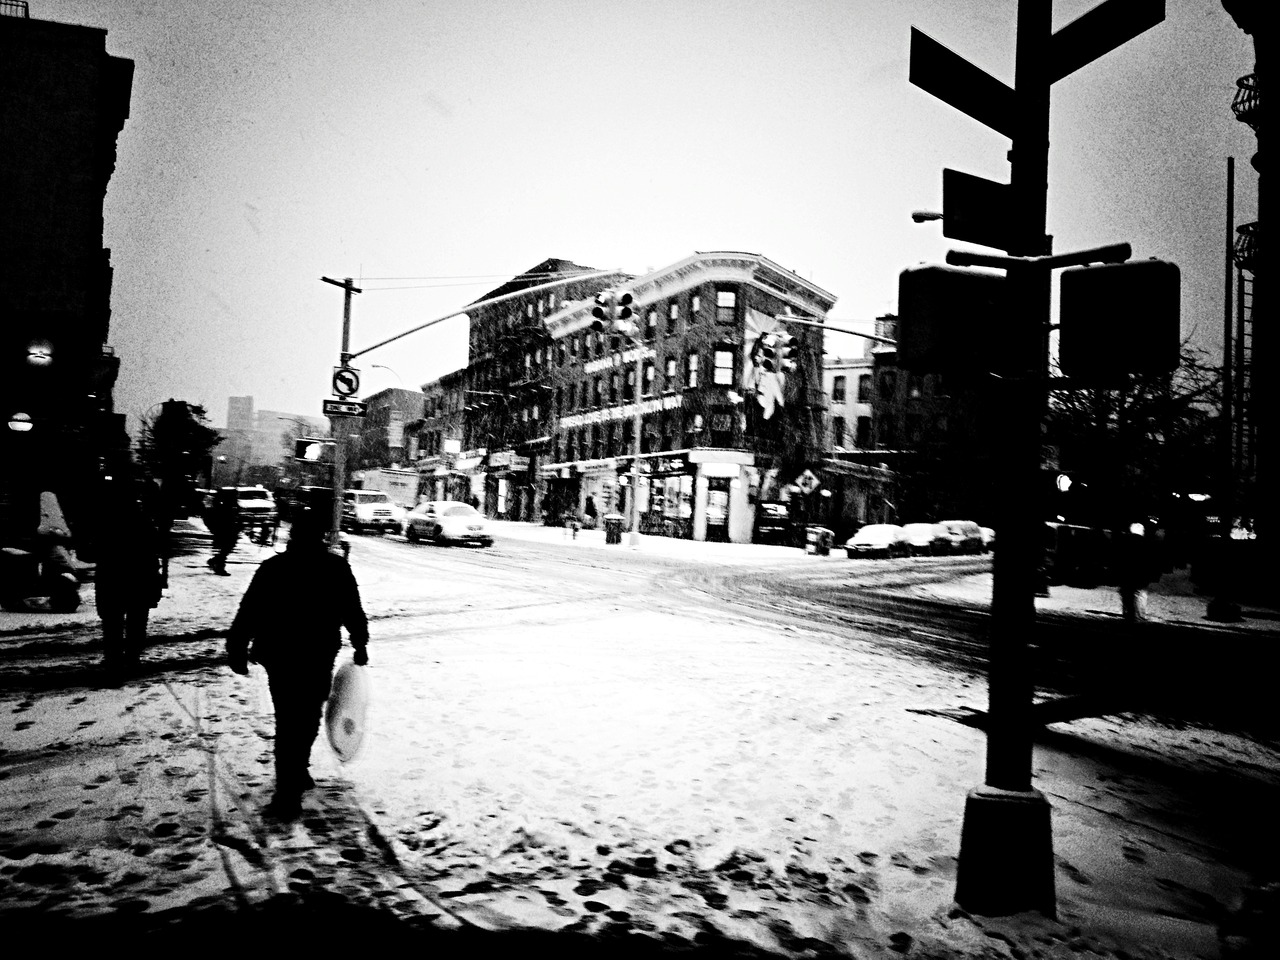 Prepare for the Heat #peppersearching #pepper #photos #man #snow #brooklyn